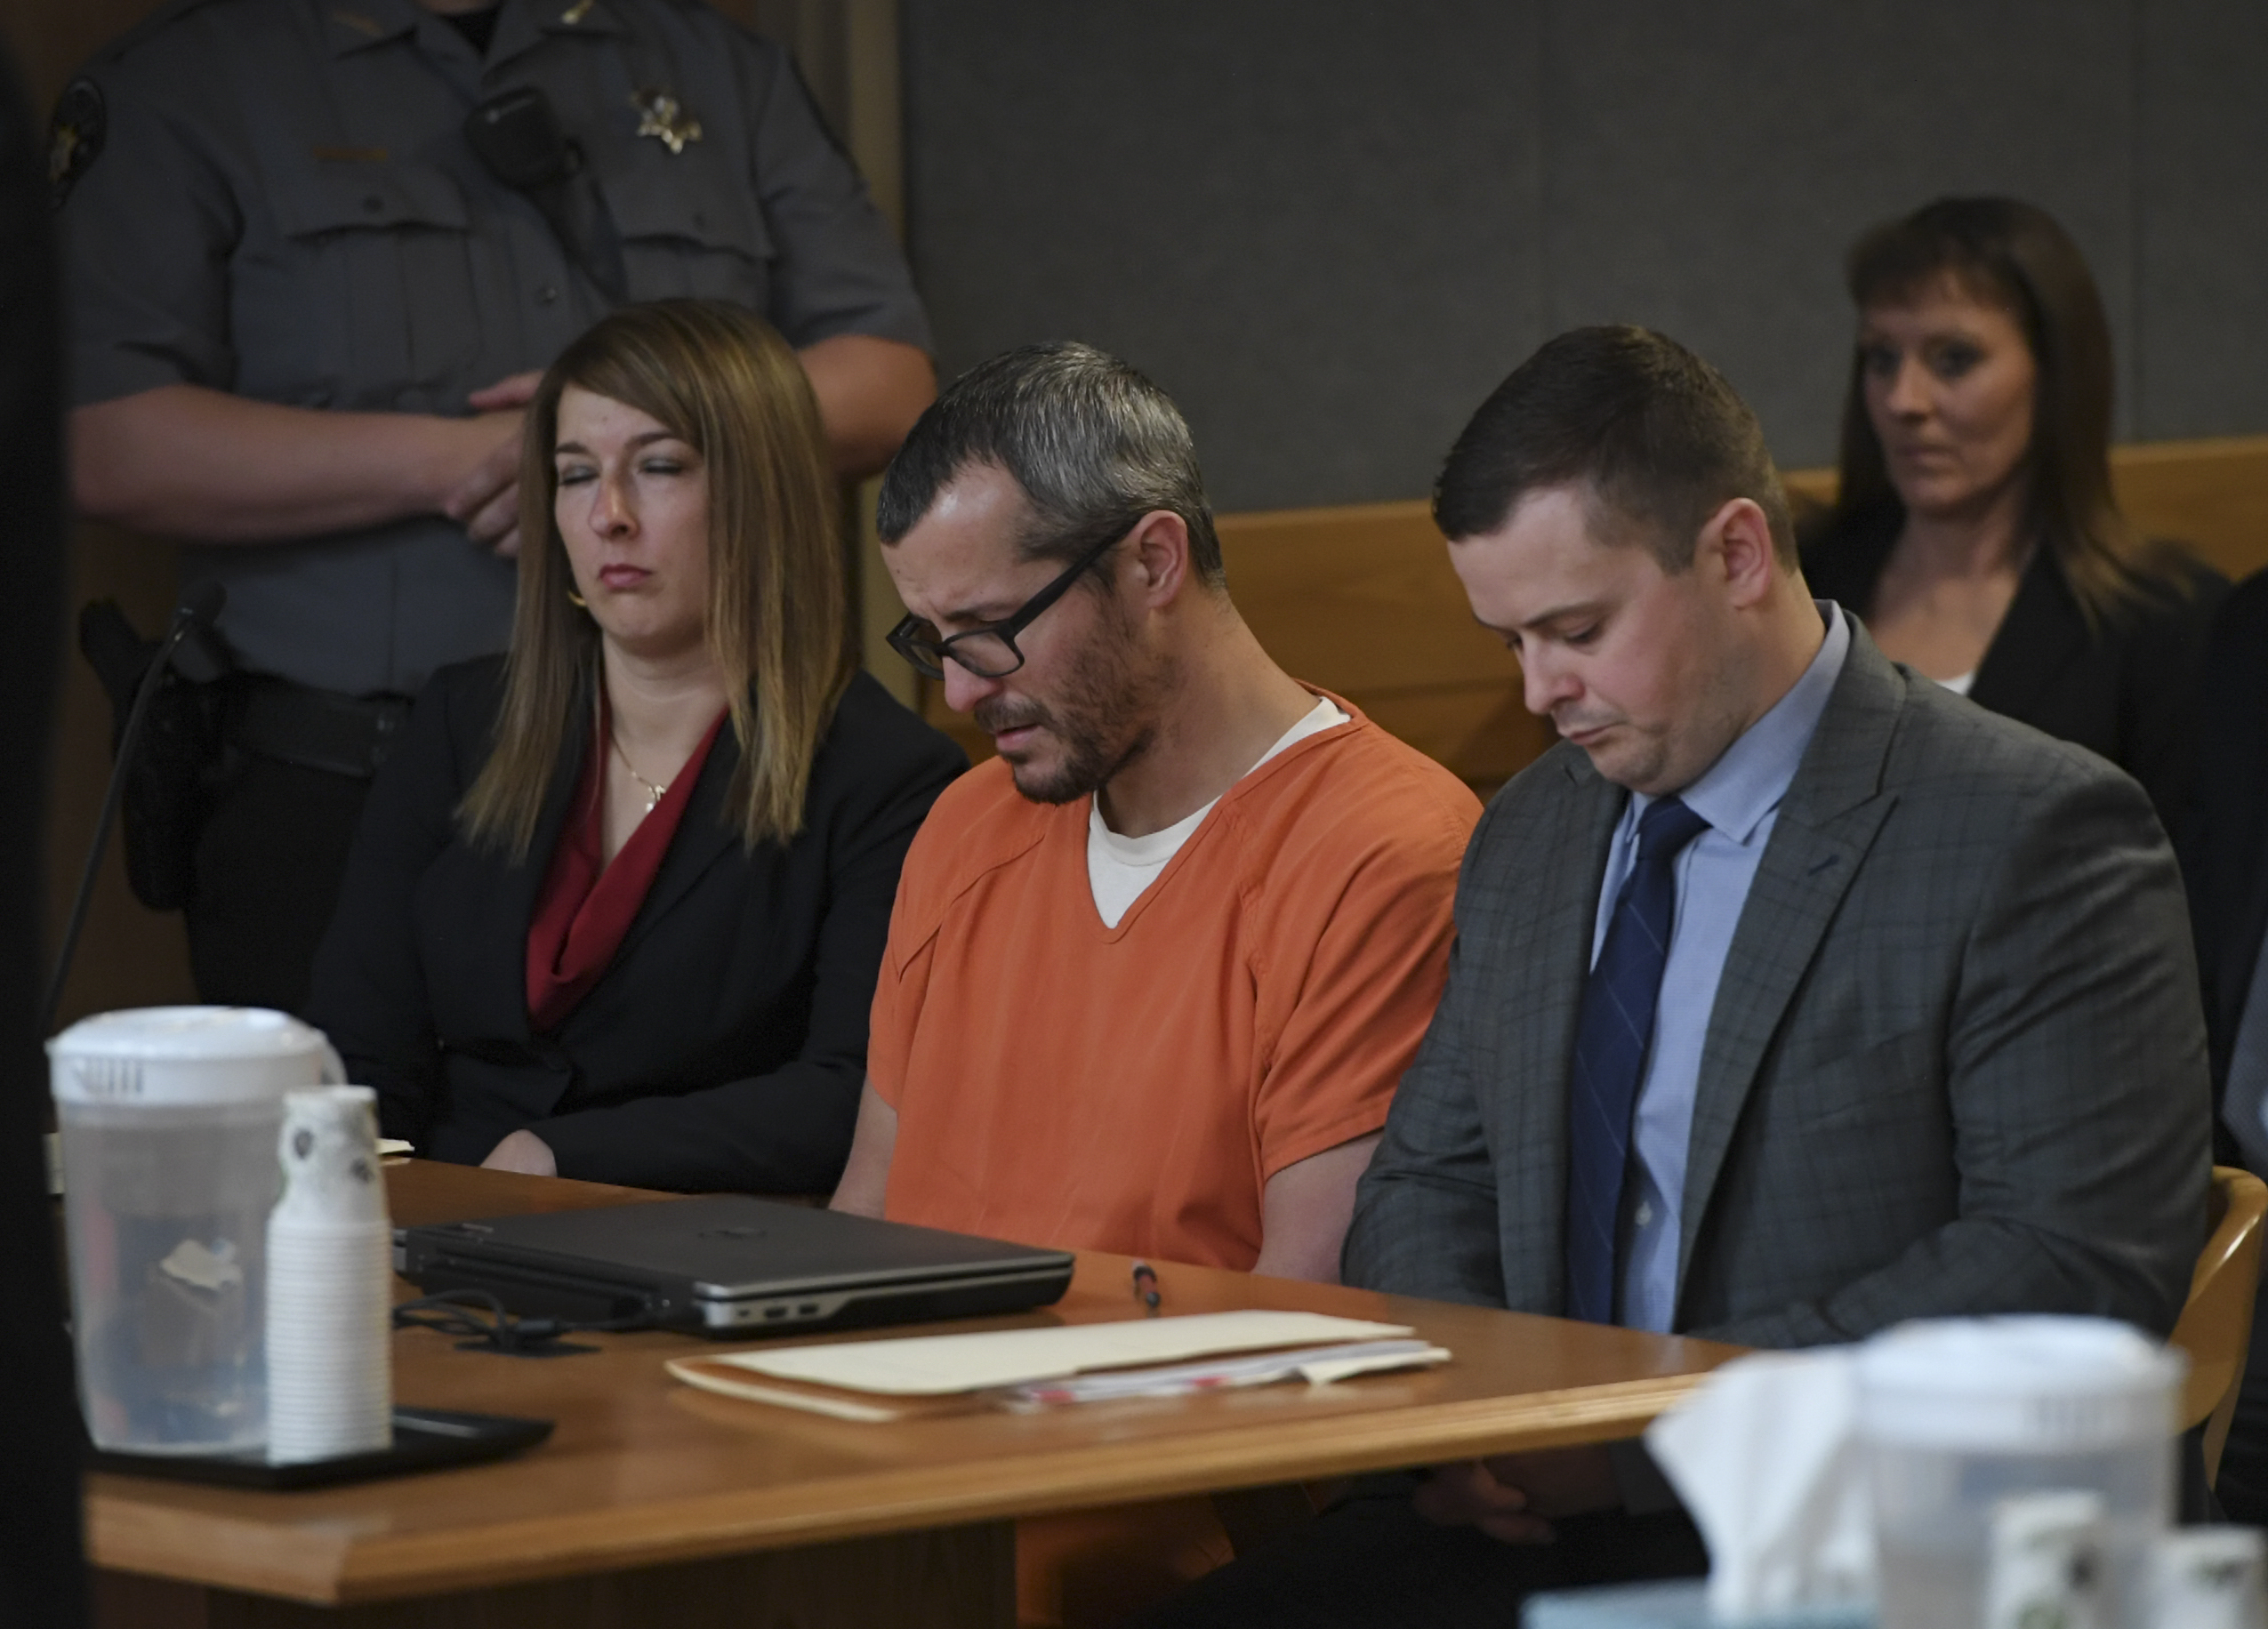 Christopher Watts sits in court for his sentencing hearing at the Weld County Courthouse on November 19, 2018, in Greeley, Colorado (Source: RJ Sangosti/The Denver Post via Getty Images)